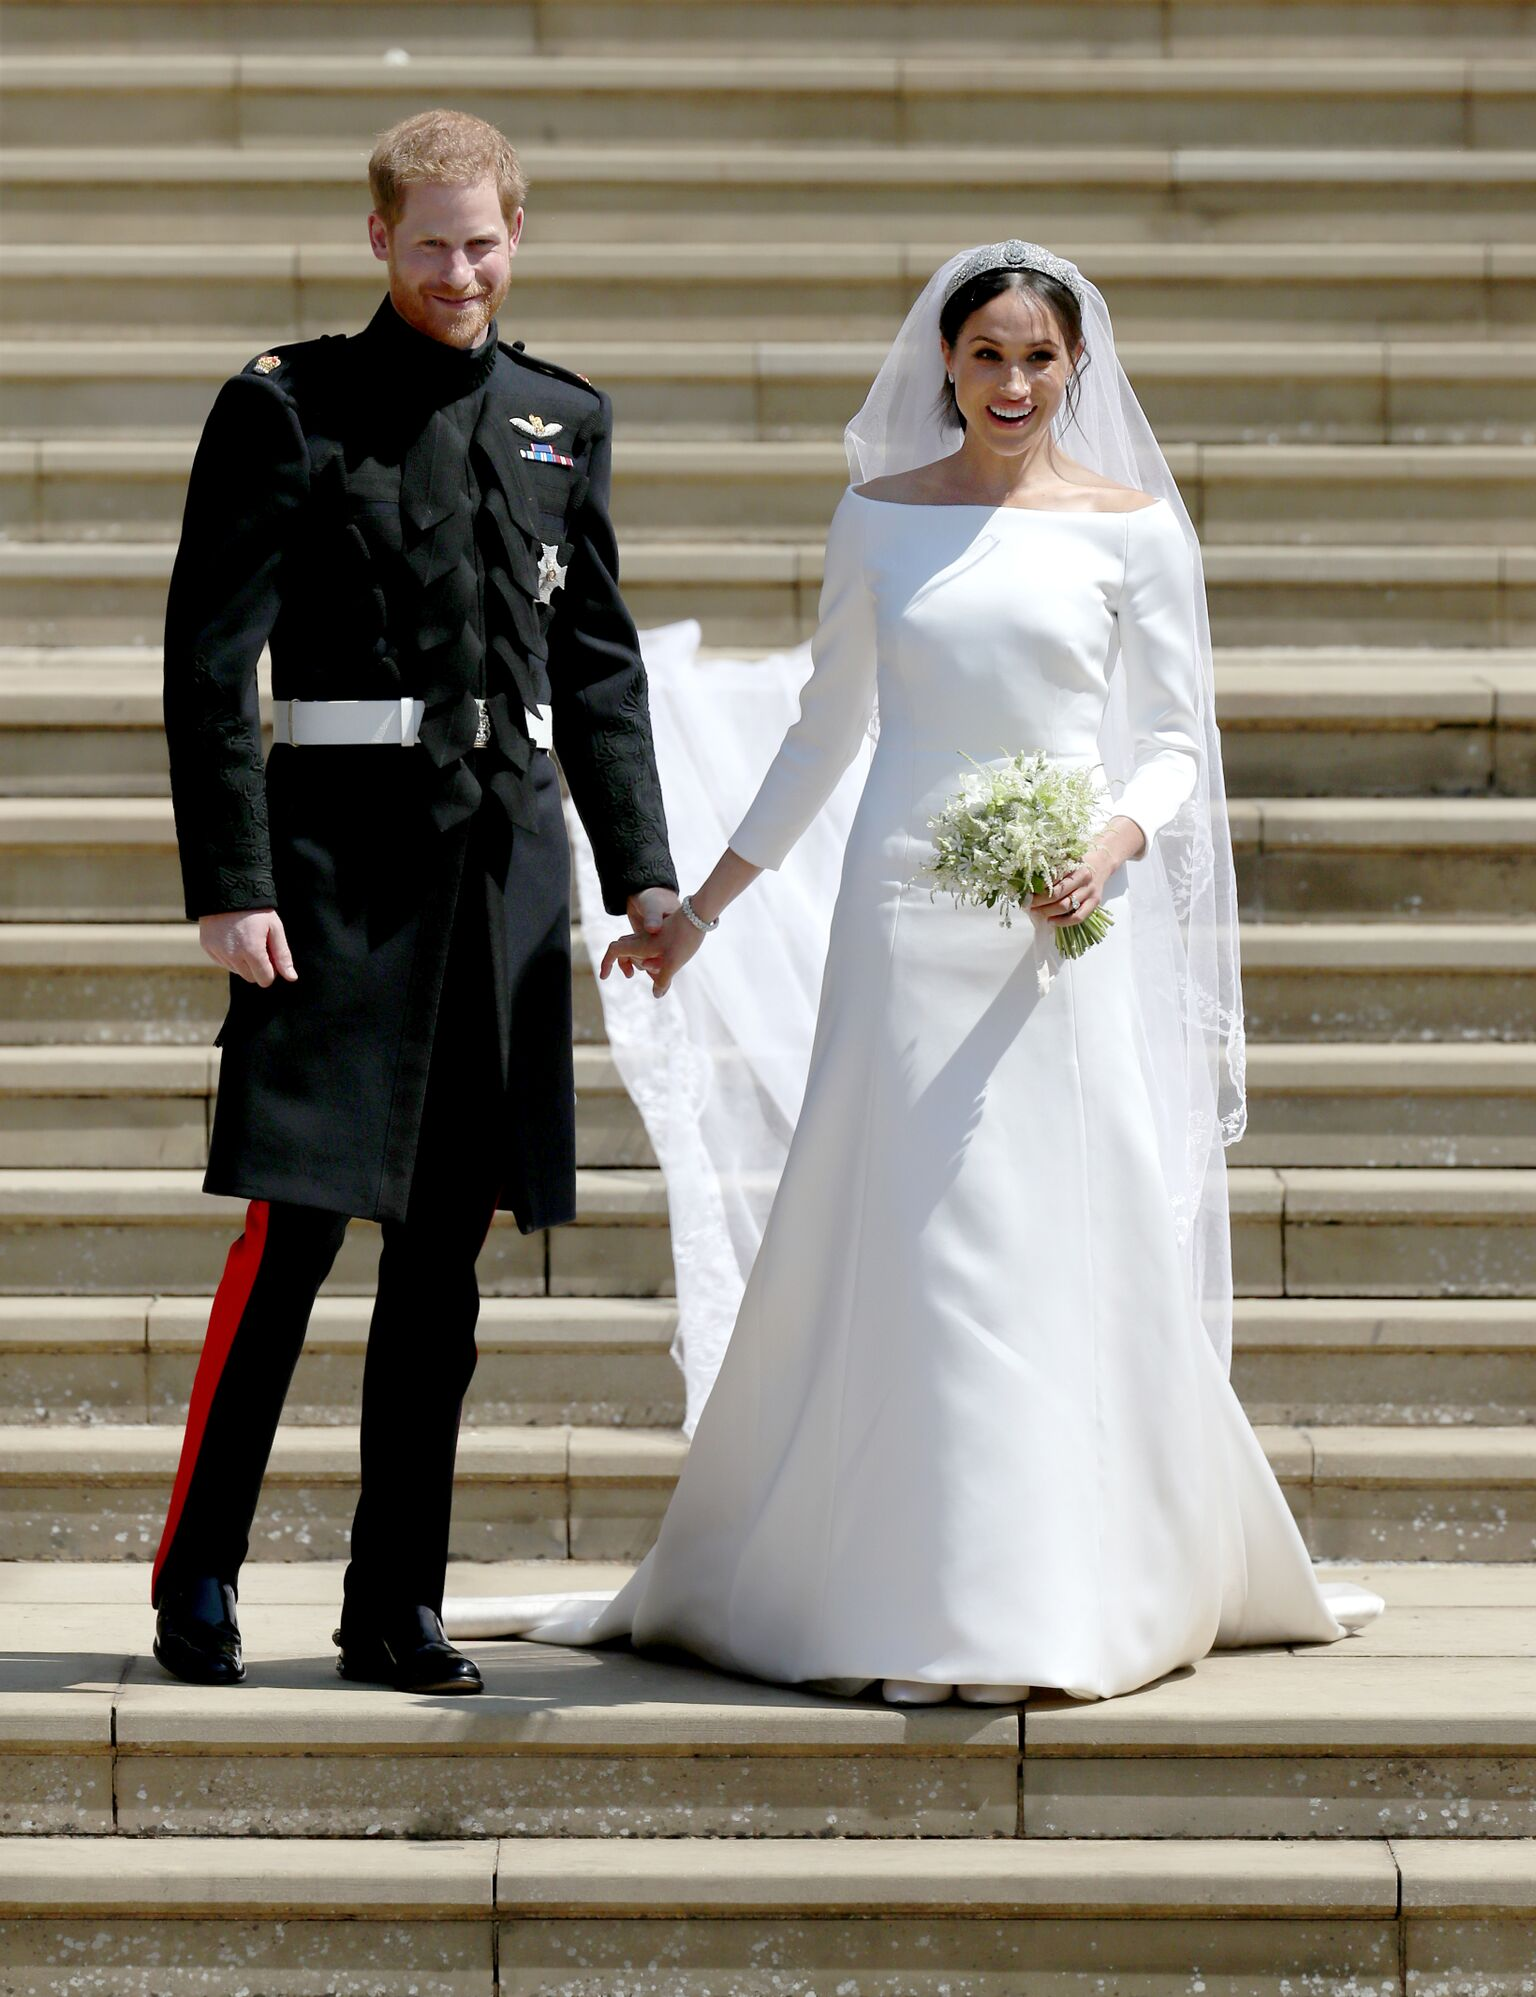 Prince Harry and Meghan Markle leaving the church on their wedding day | Getty Images